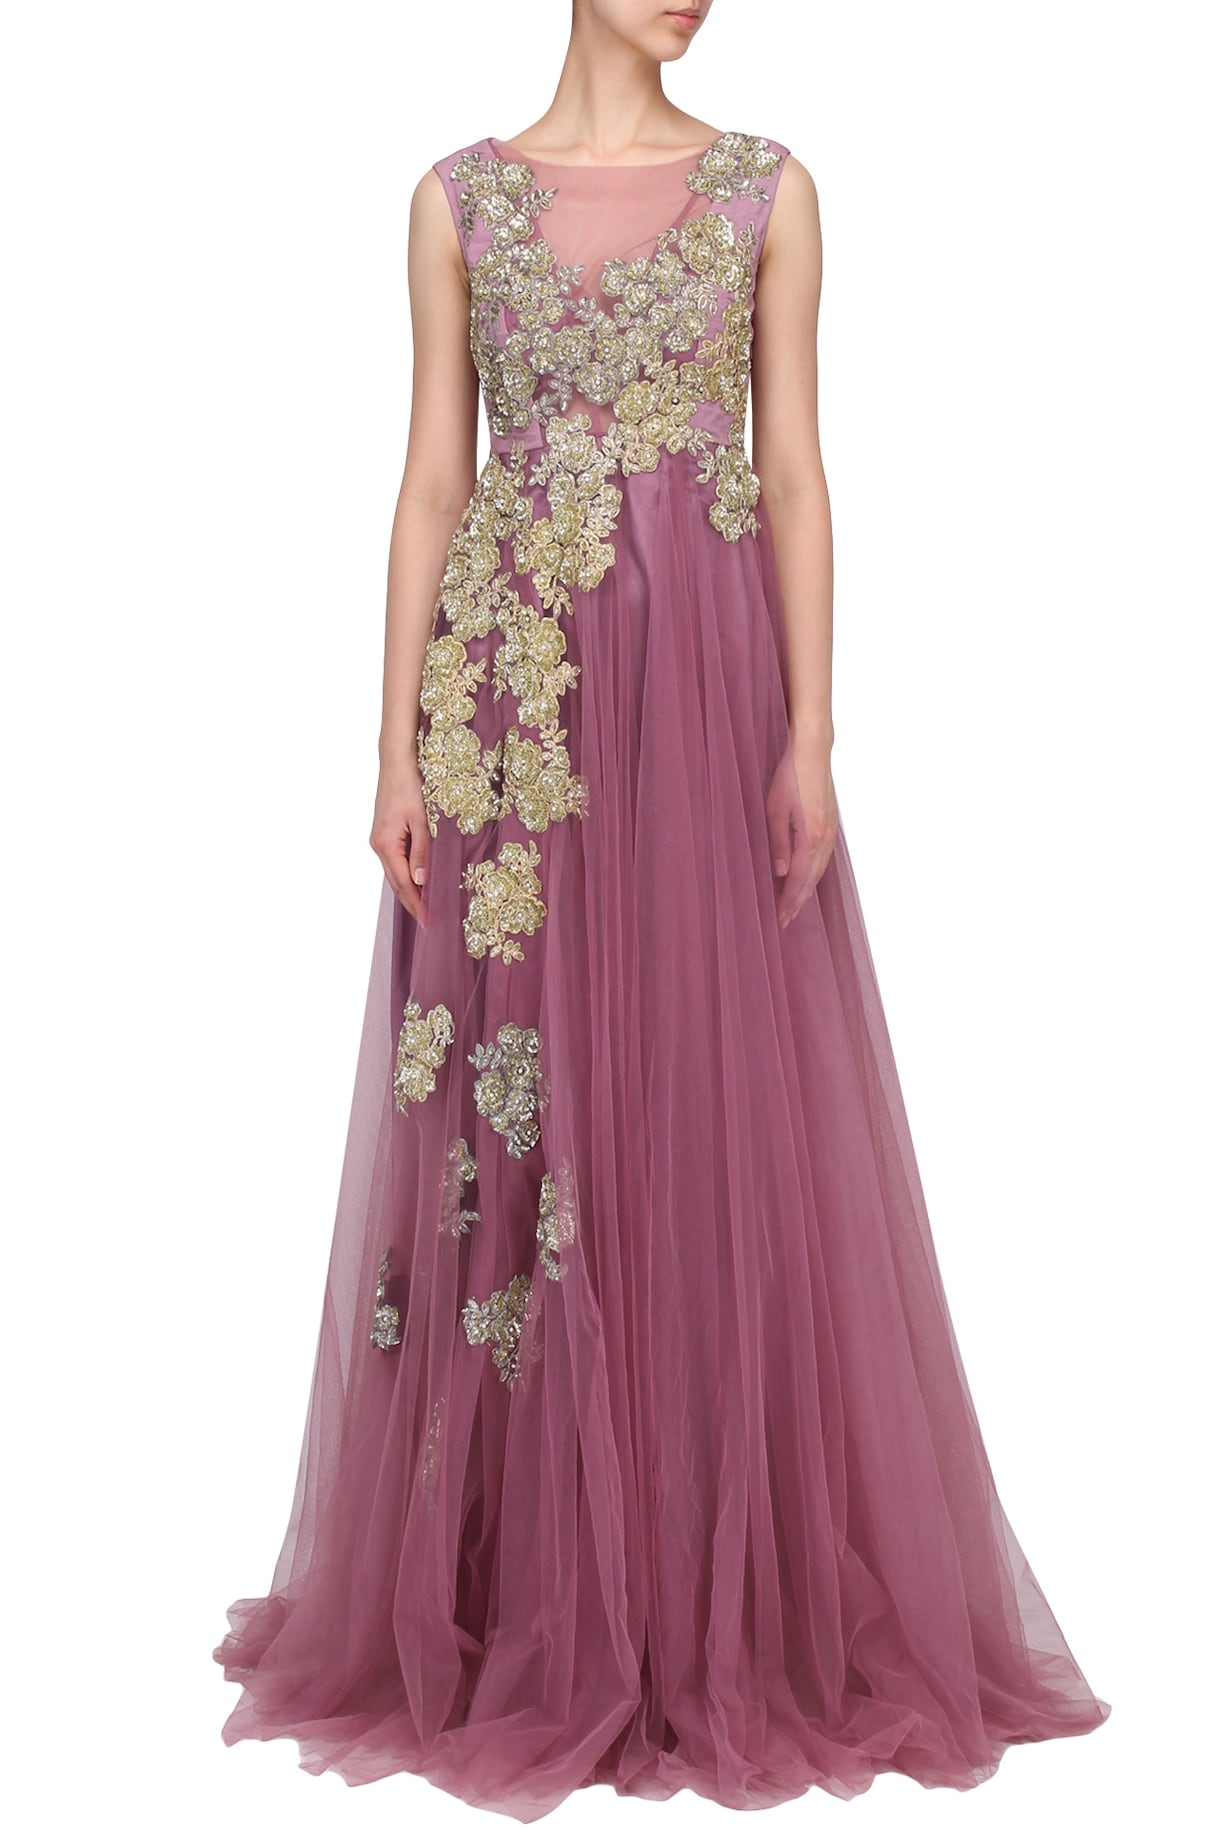 Aharin India Gowns